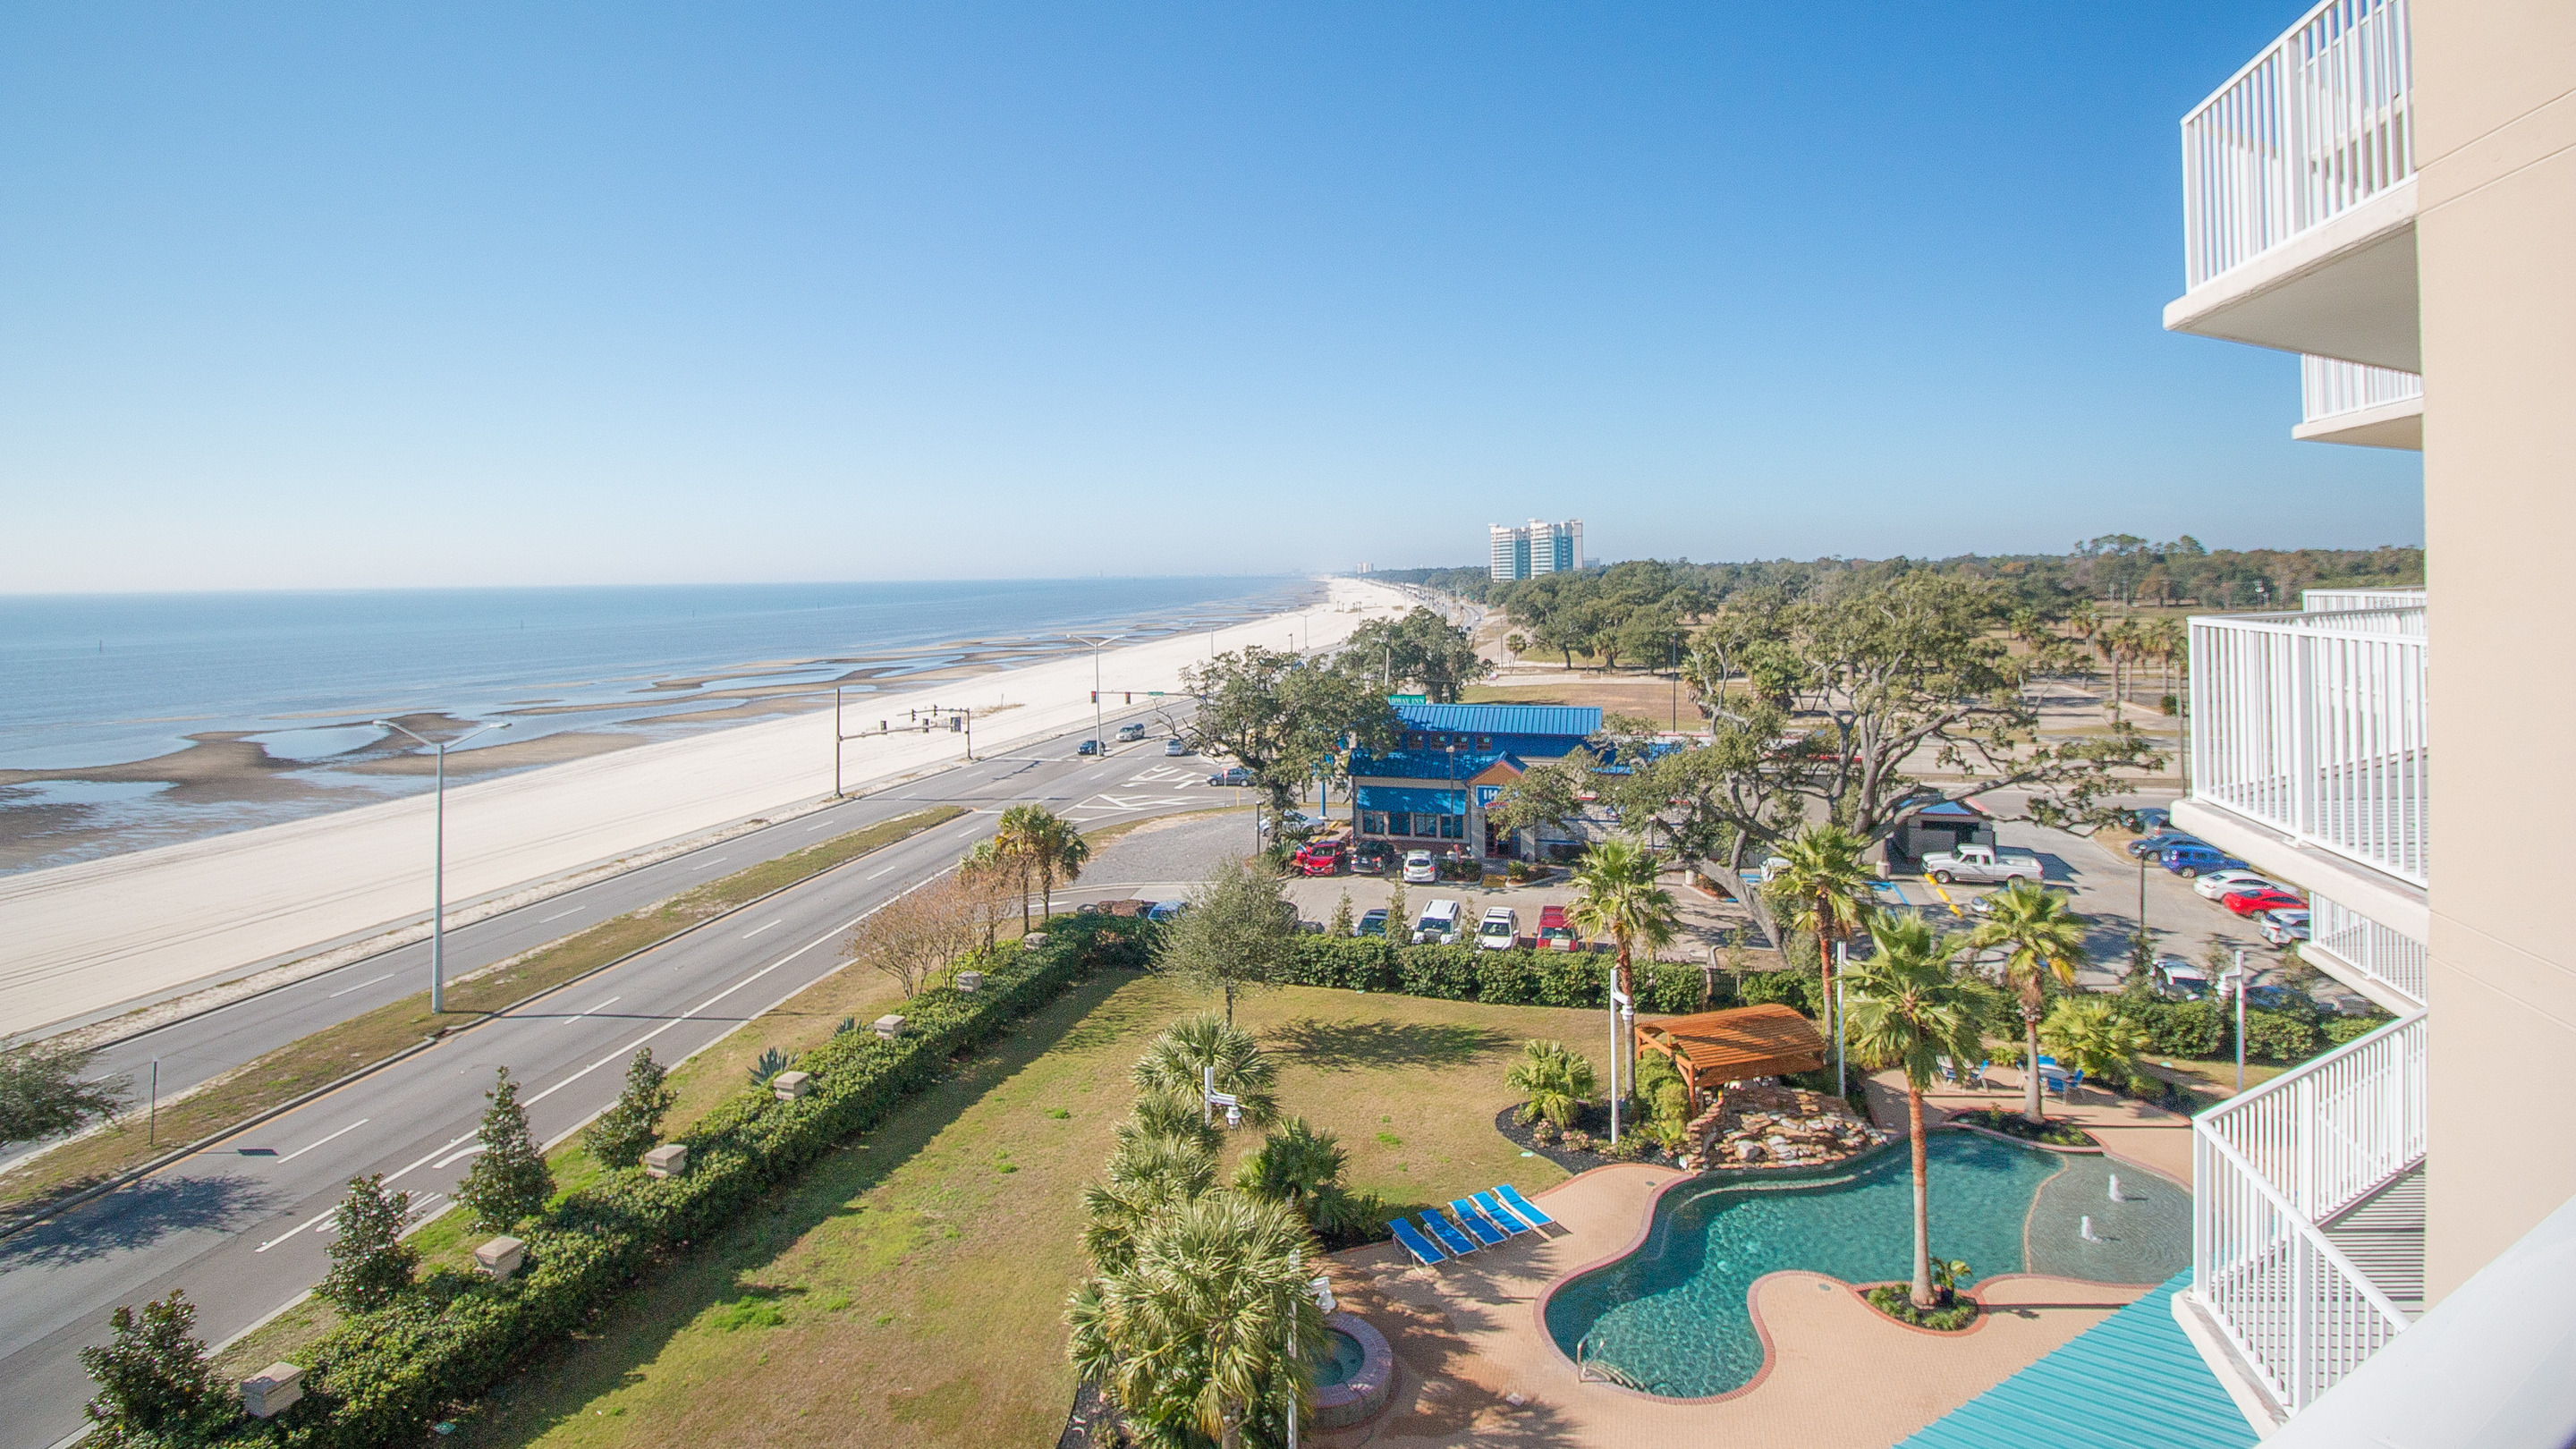 Rent Vacation Condos In Biloxi Near The Casinos Vrbo